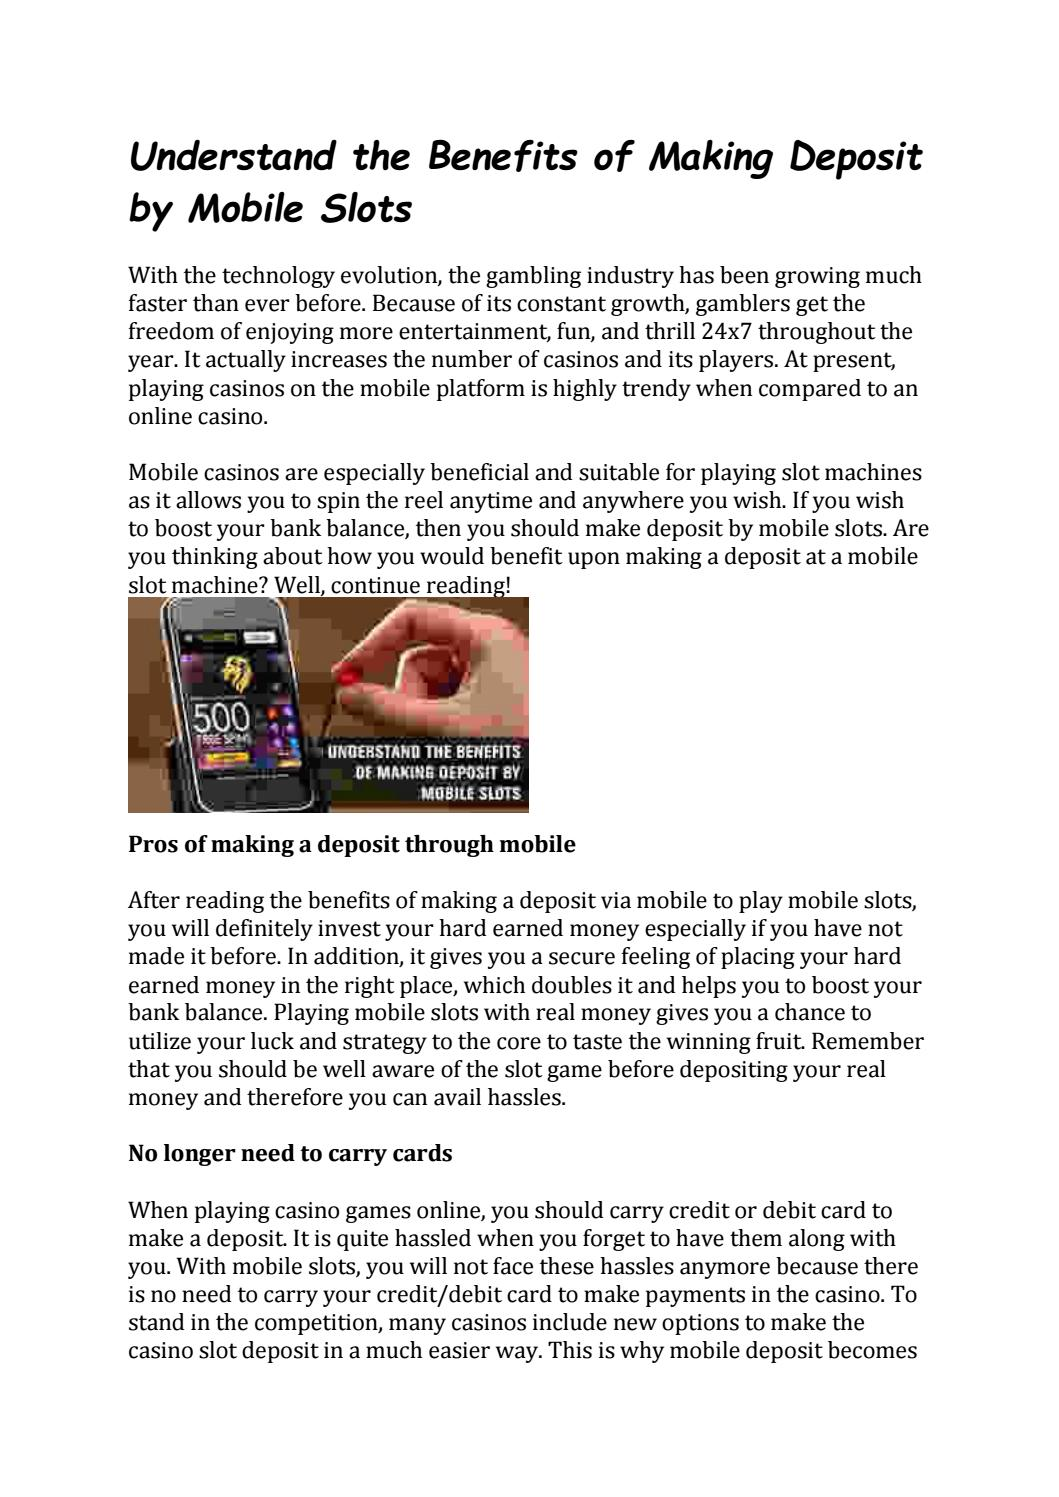 Understand The Benefits Of Making Deposit By Mobile Slots By